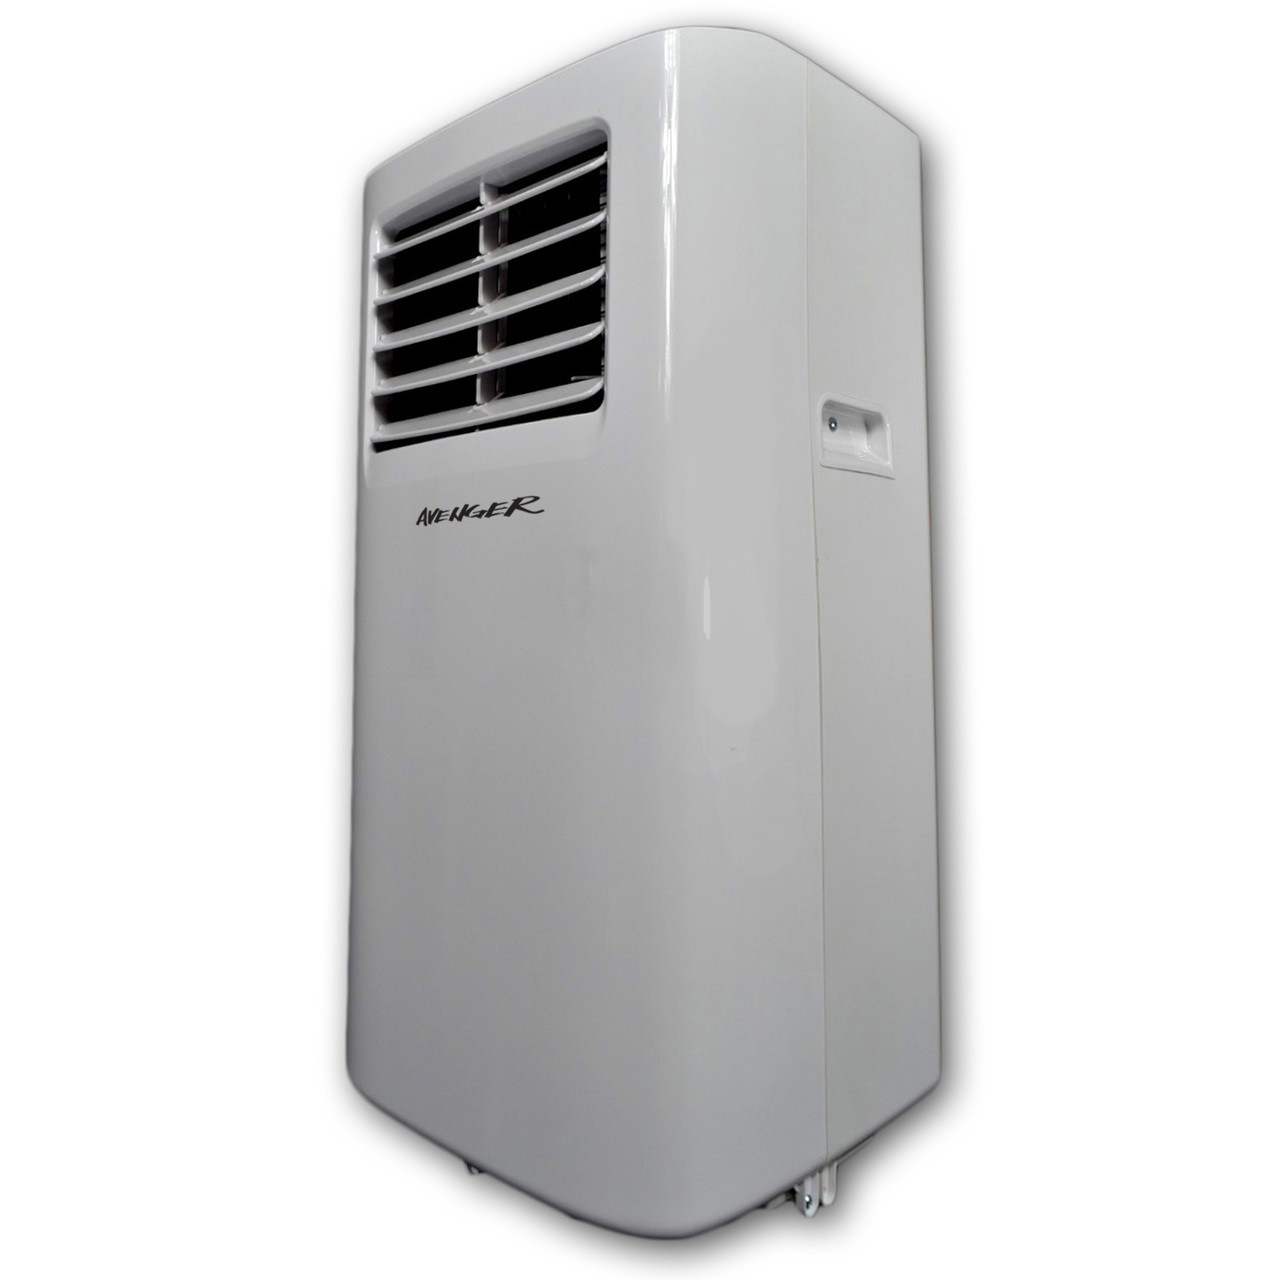 avenger 8000 btu portable air conditioner with remote control jhs a019 08kr - Air Conditioner And Heater